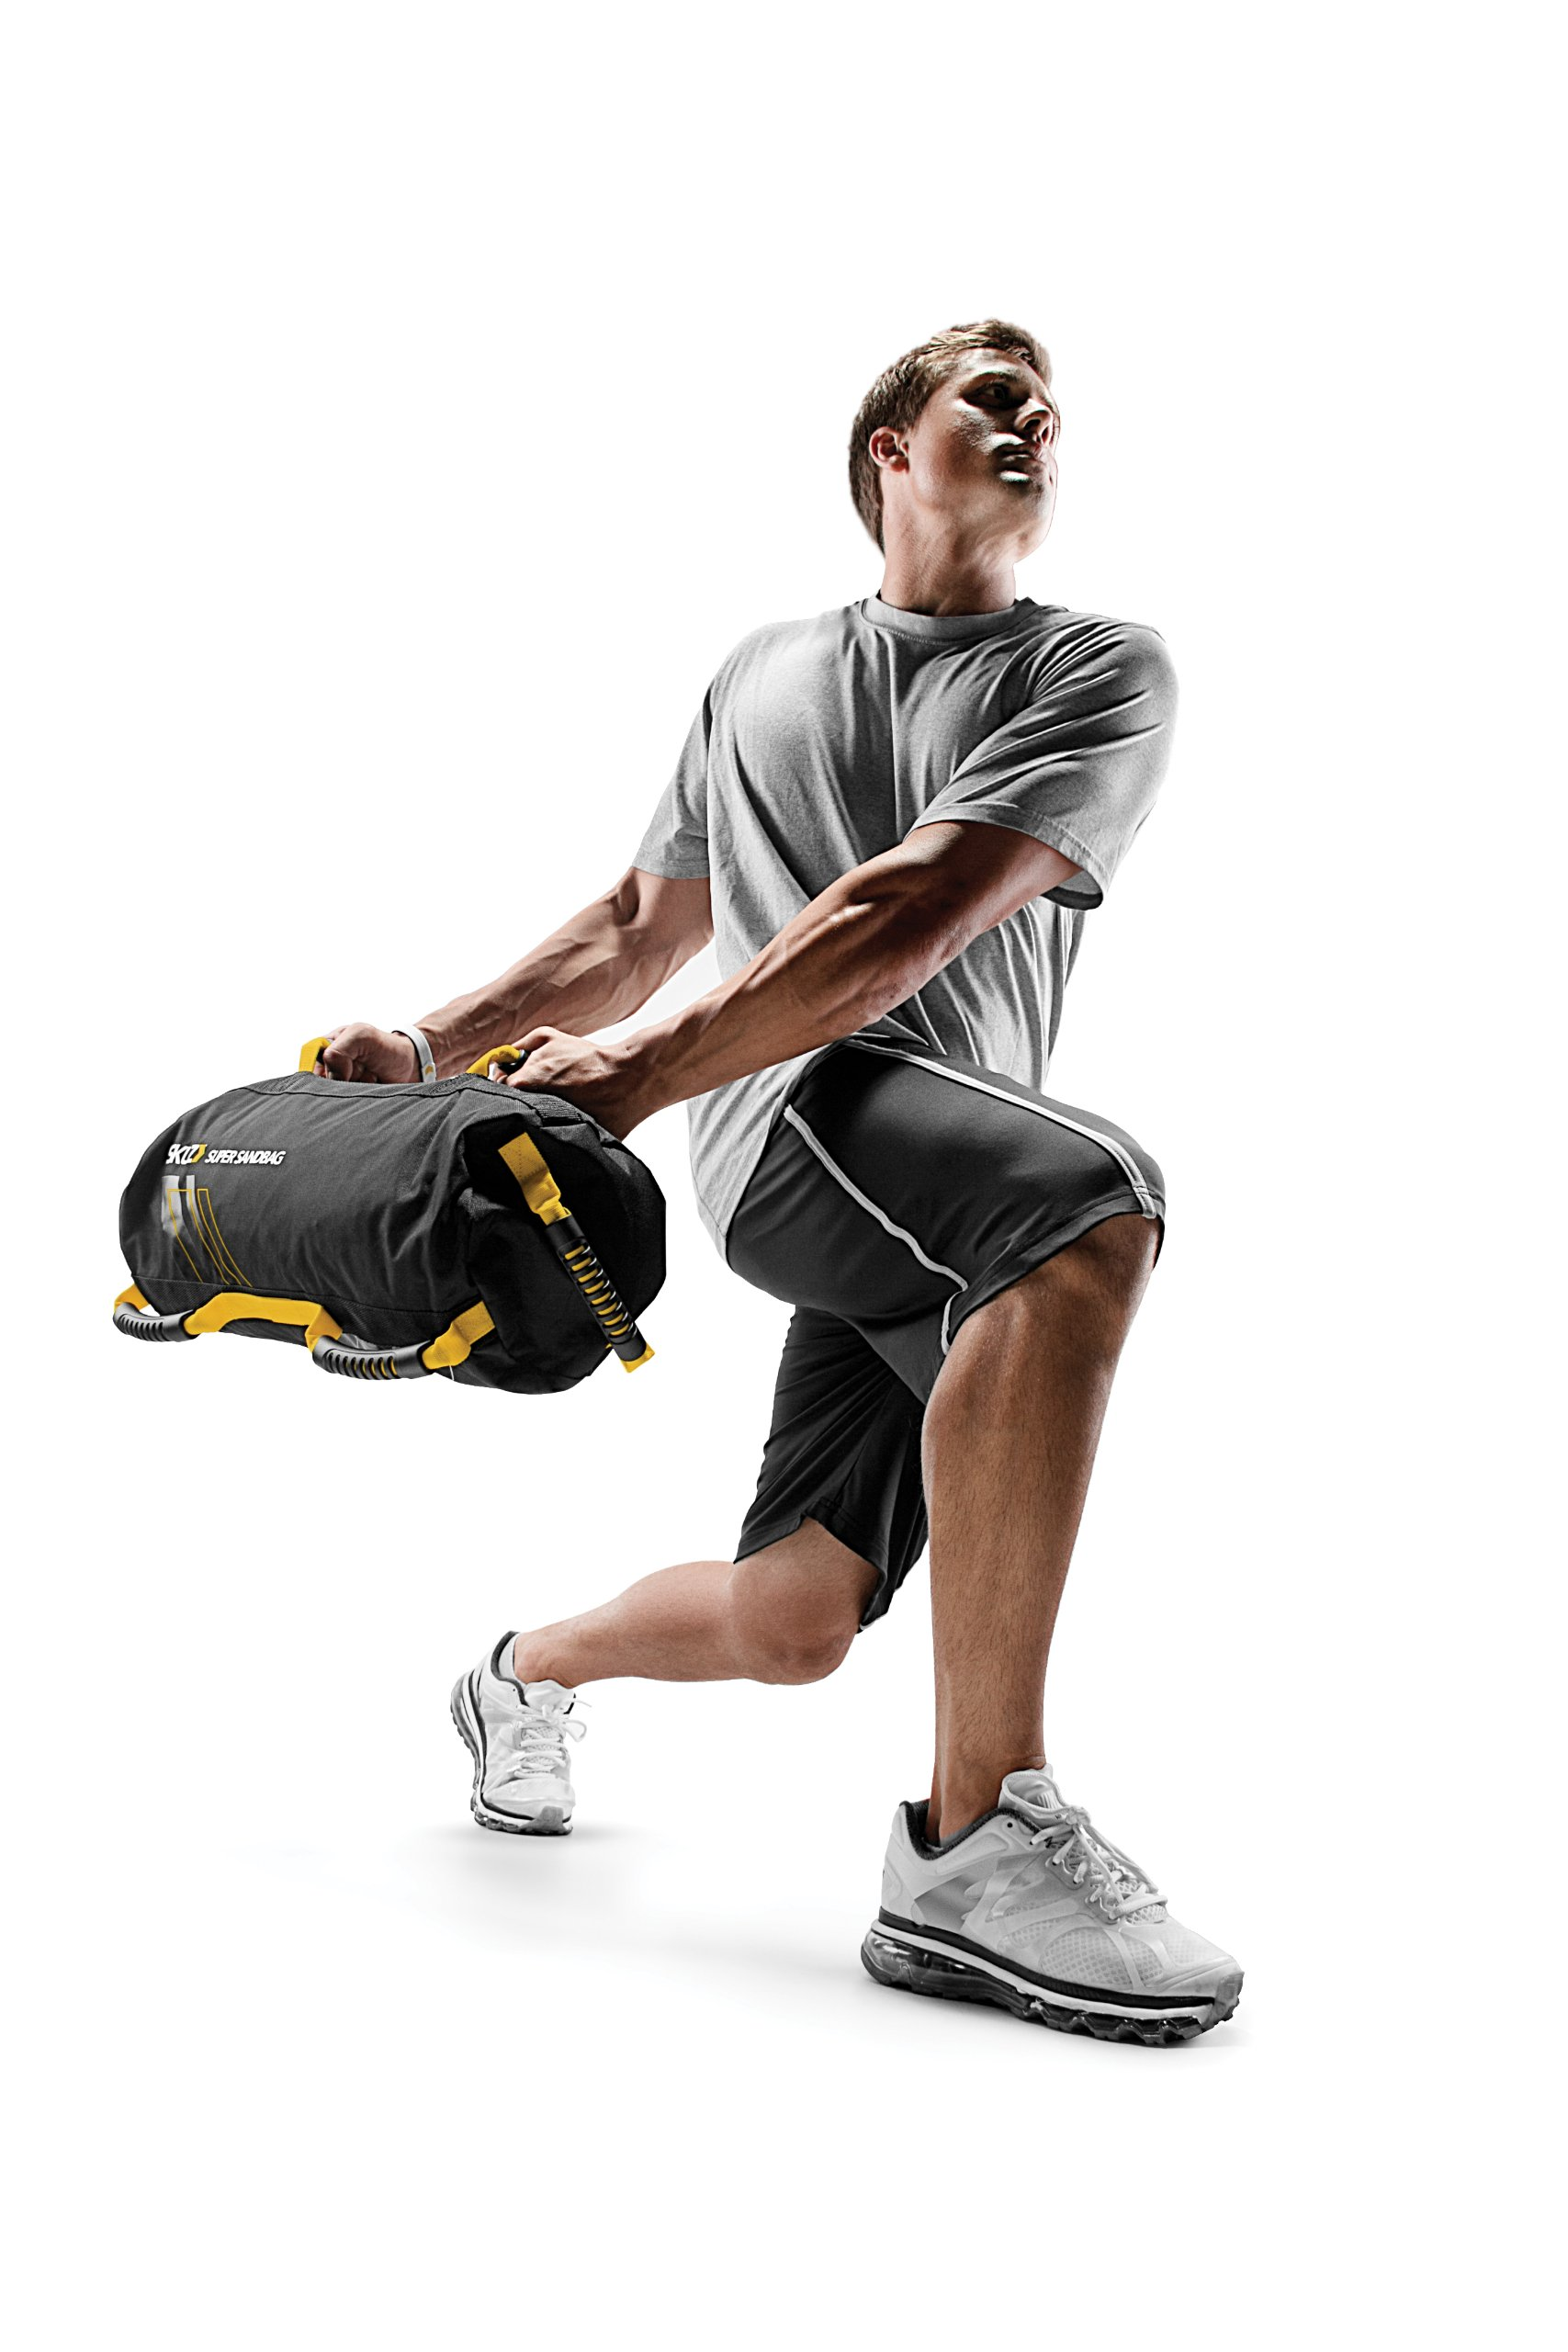 SKLZ Super Sandbag - Heavy Duty Training Weight Bag by SKLZ (Image #9)